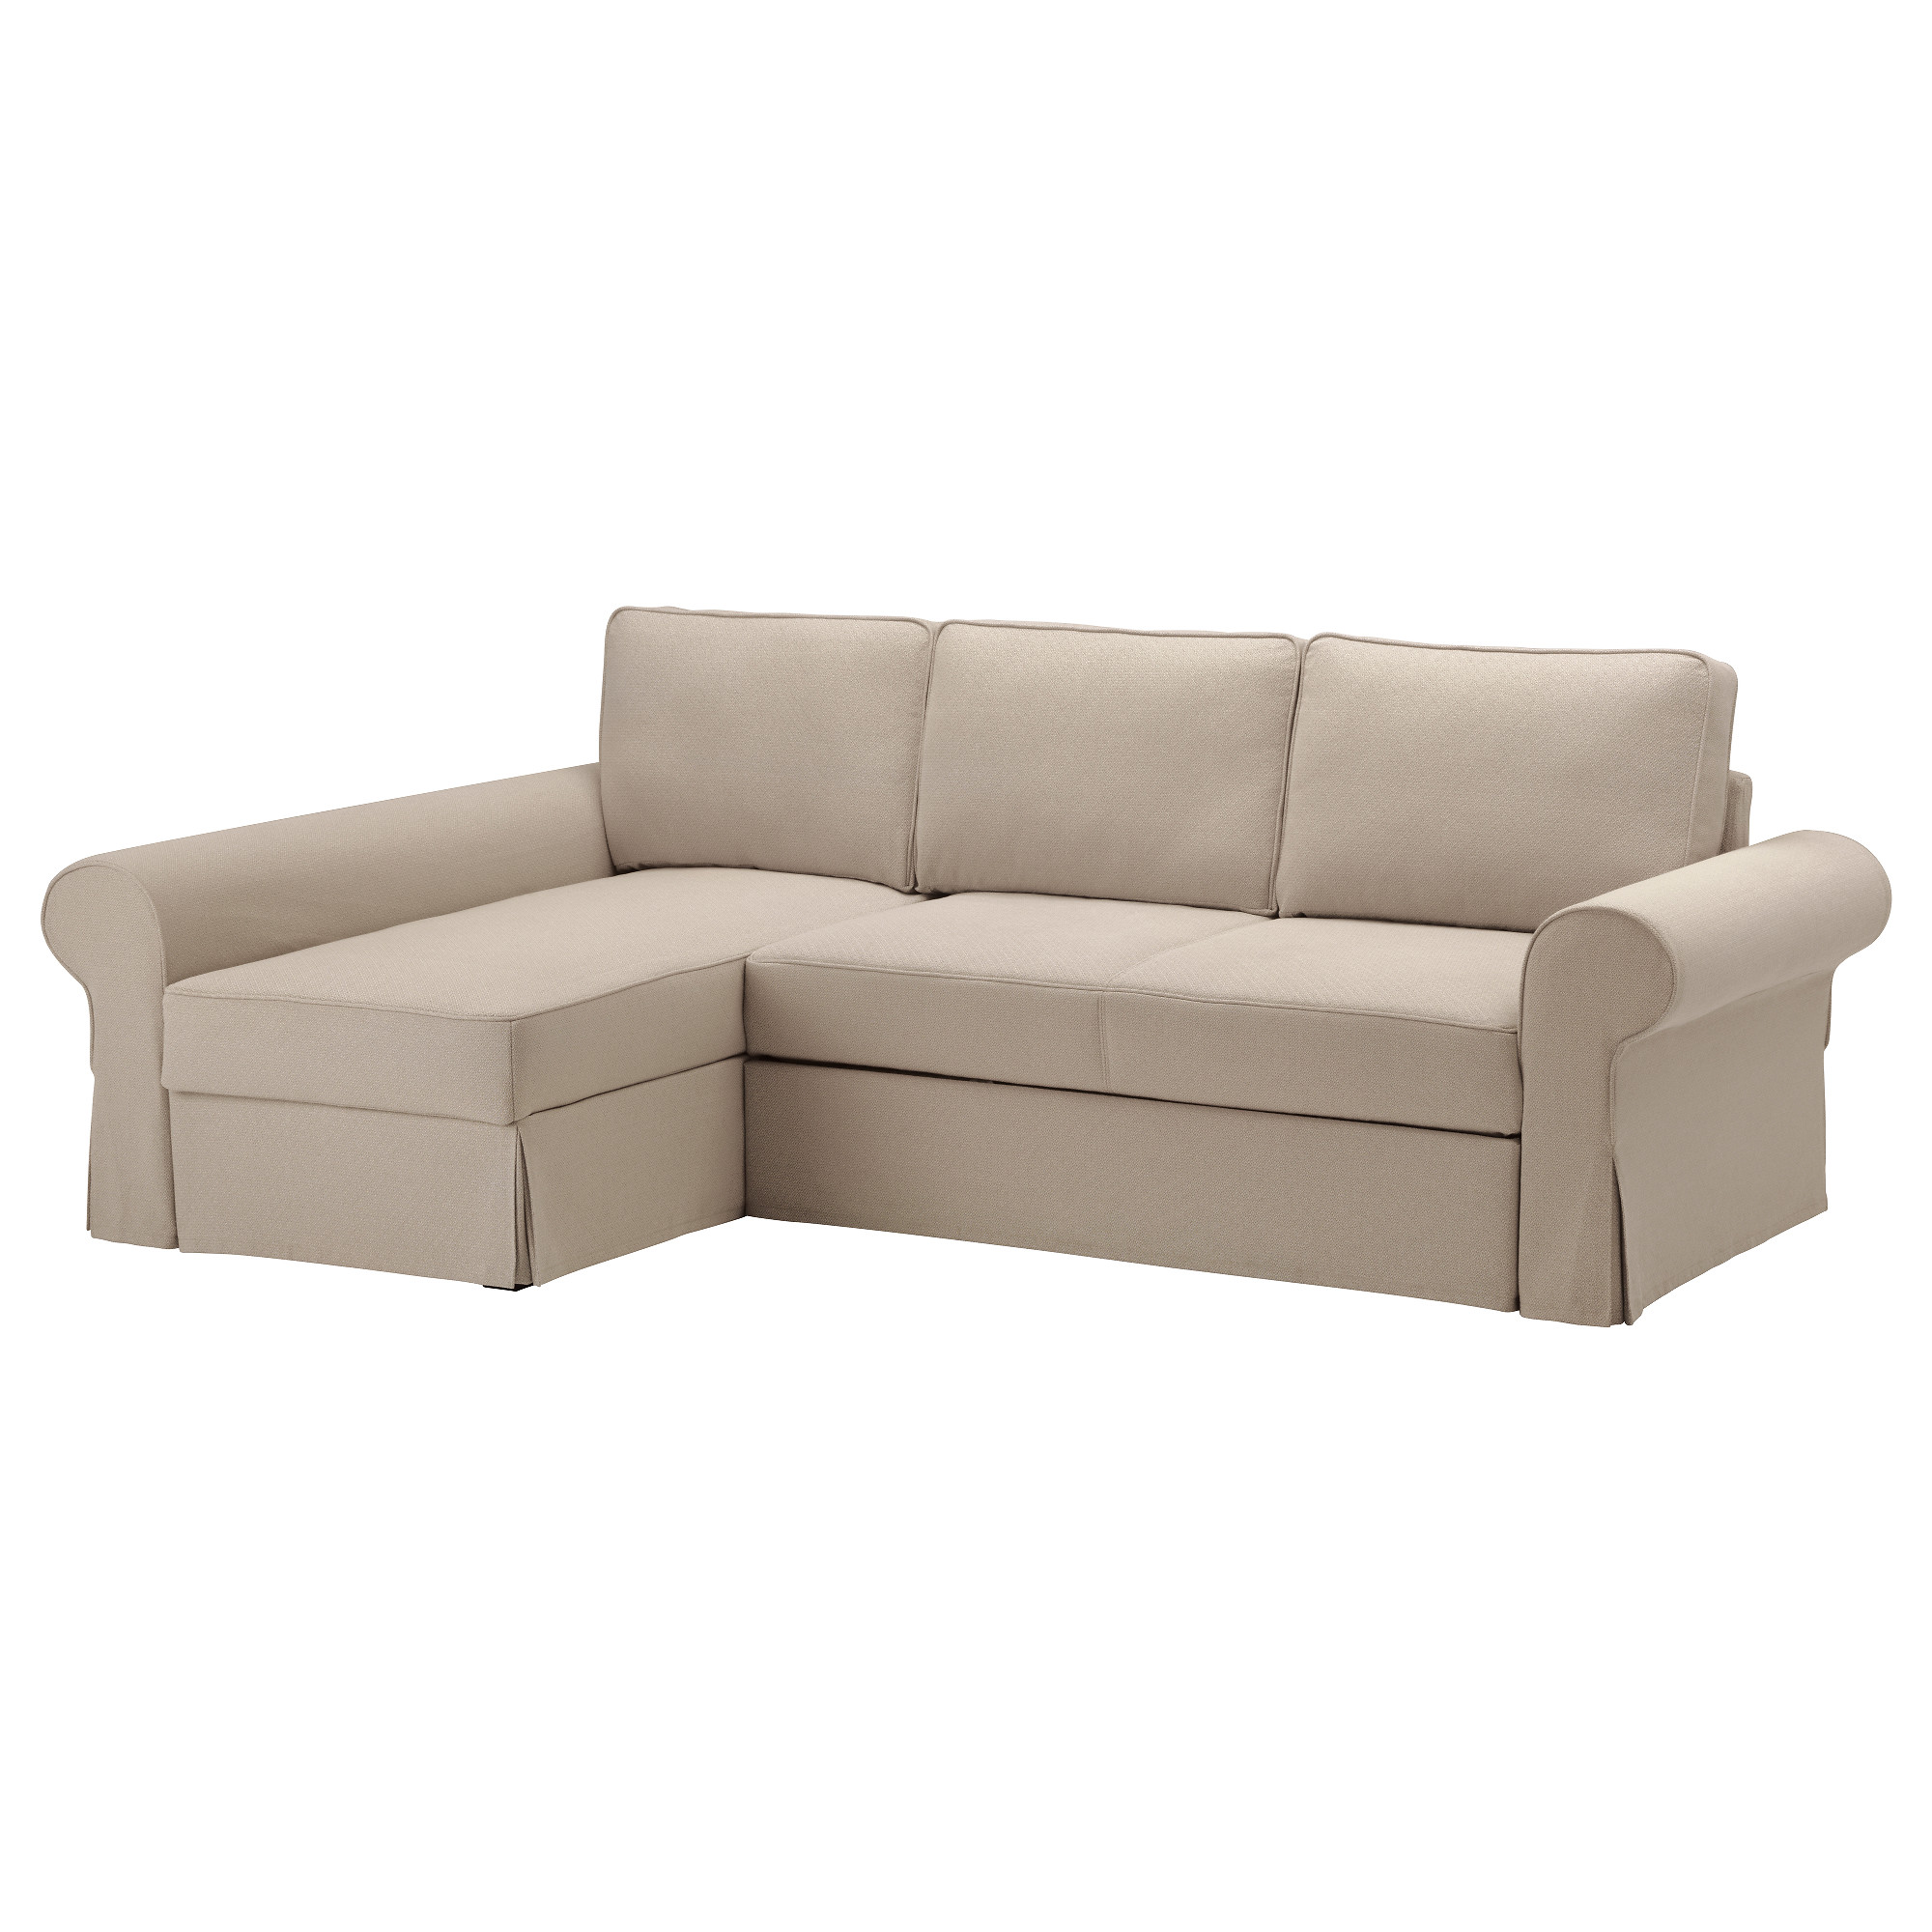 Sofa Bed With Chaise Longue Backabro Hylte Beige